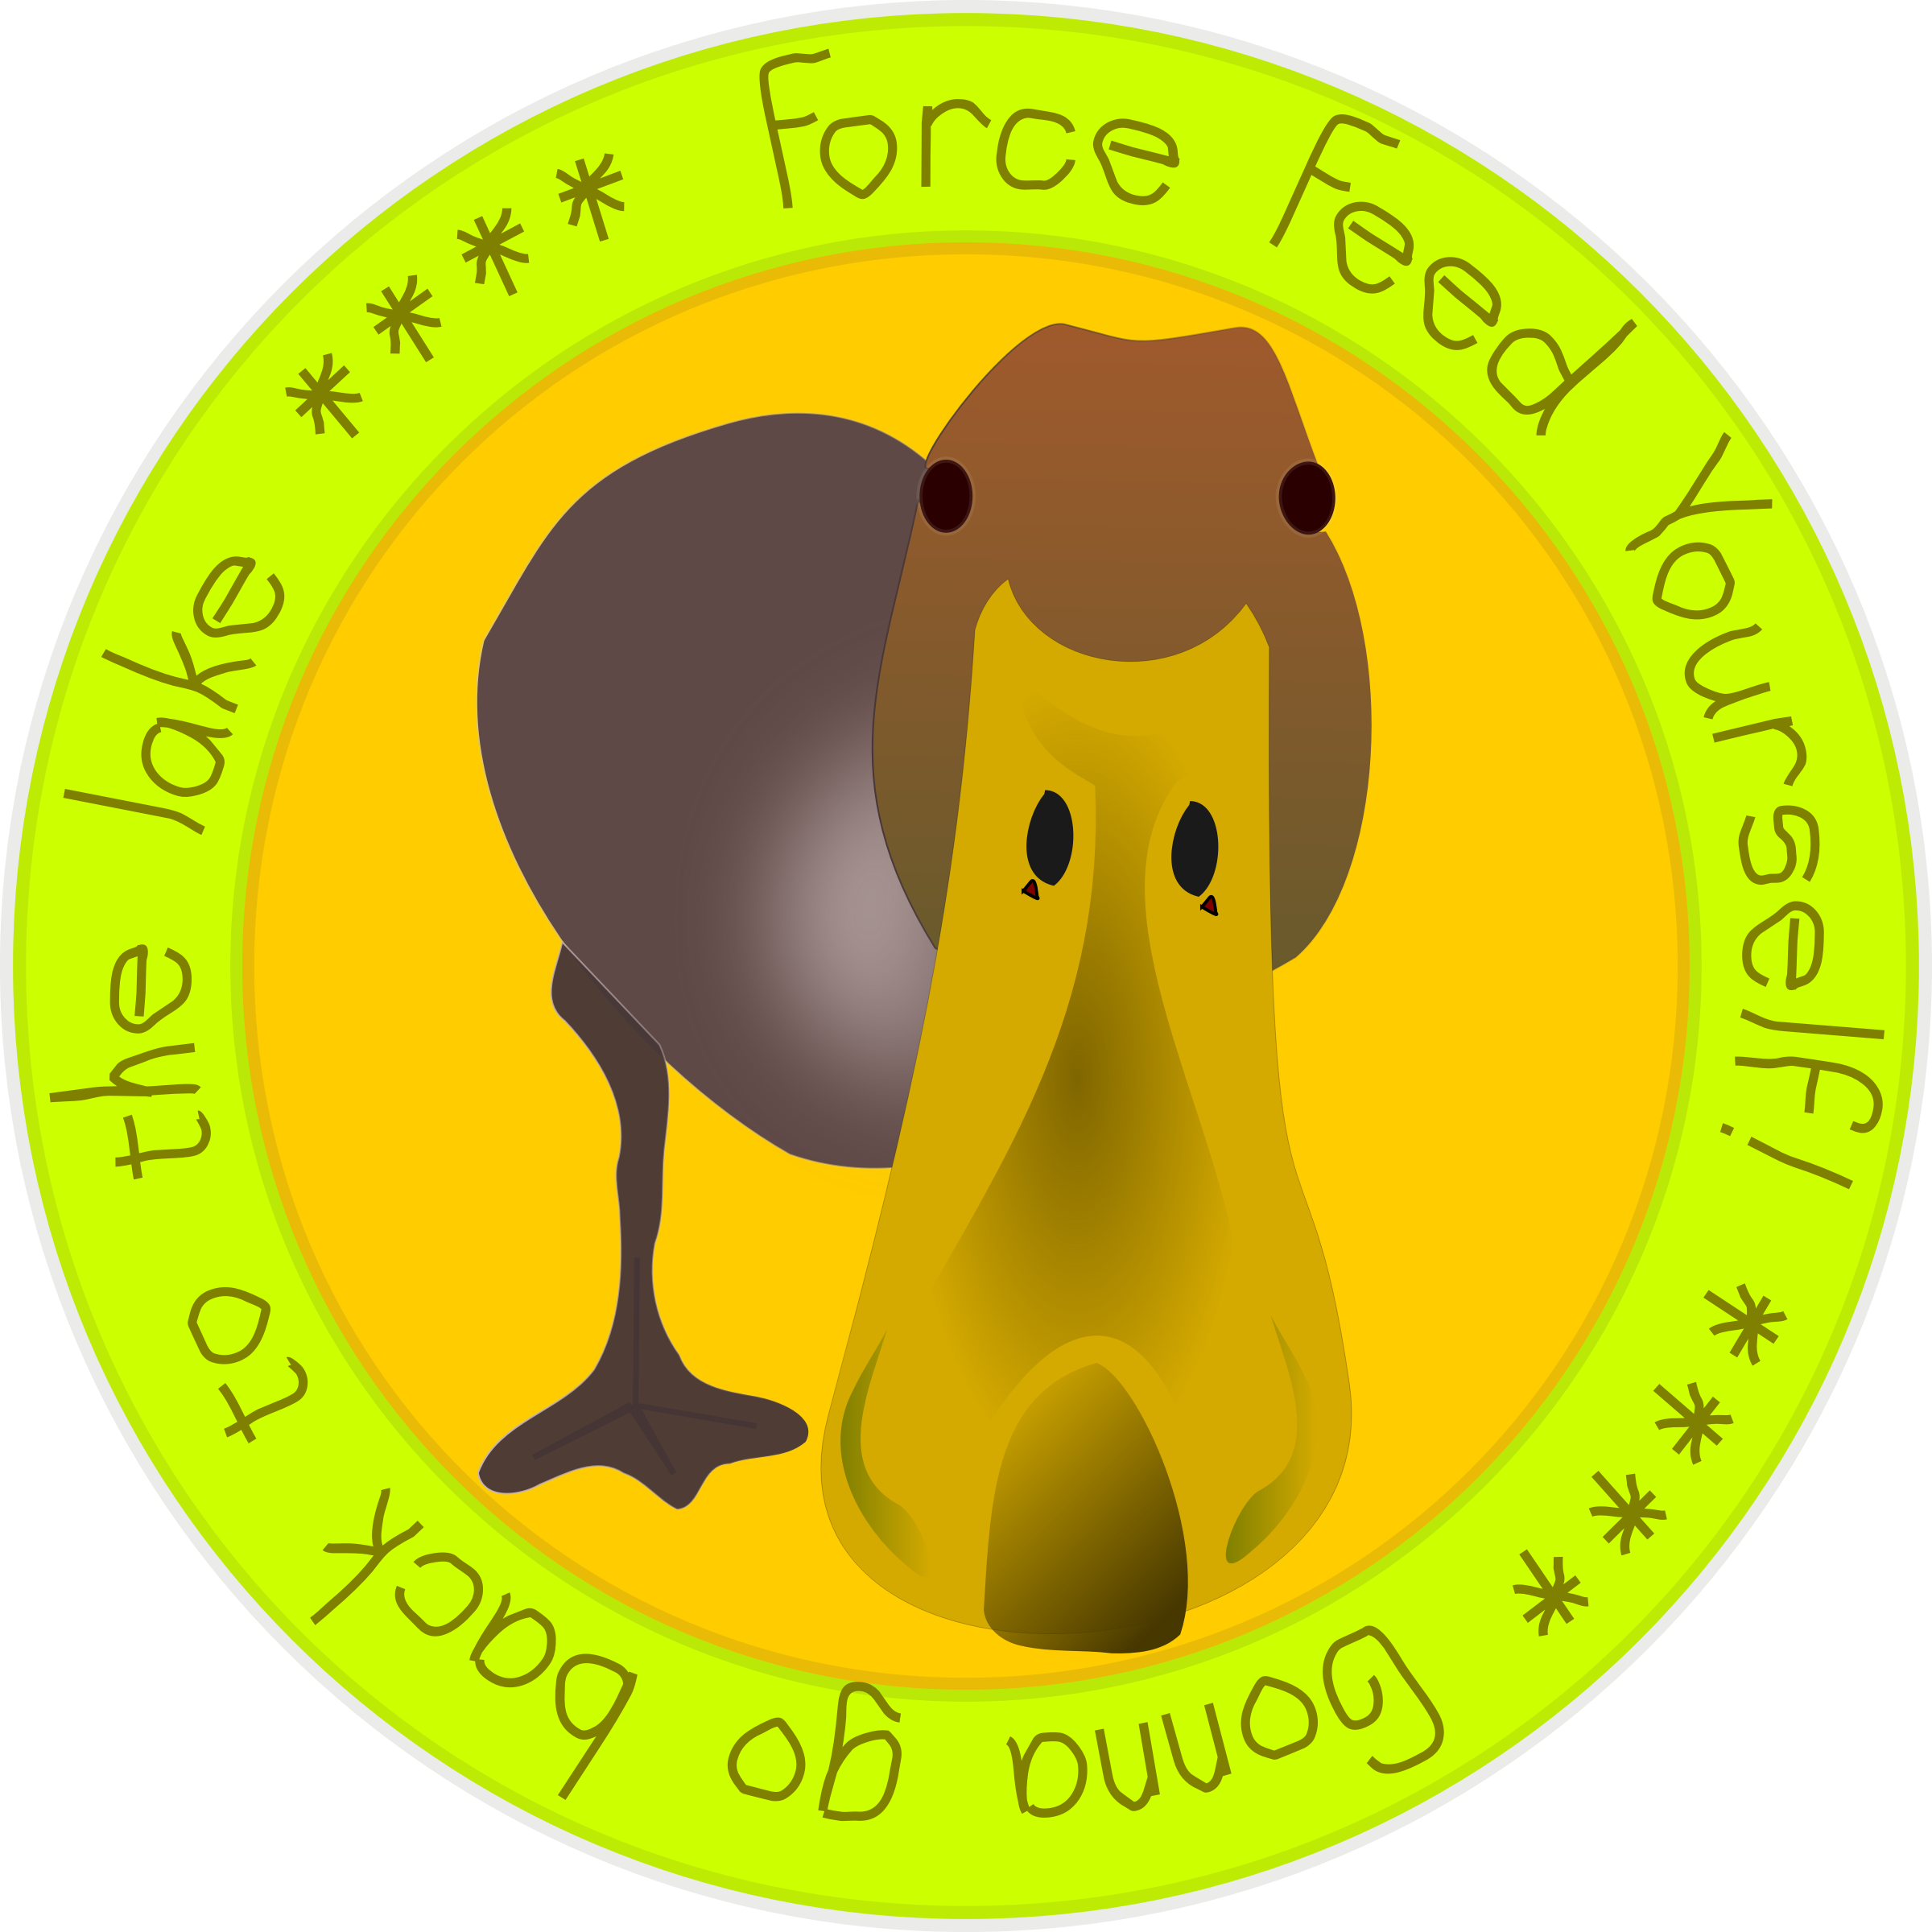 FORCE FEED YOURSELF -- Patch by cibo00